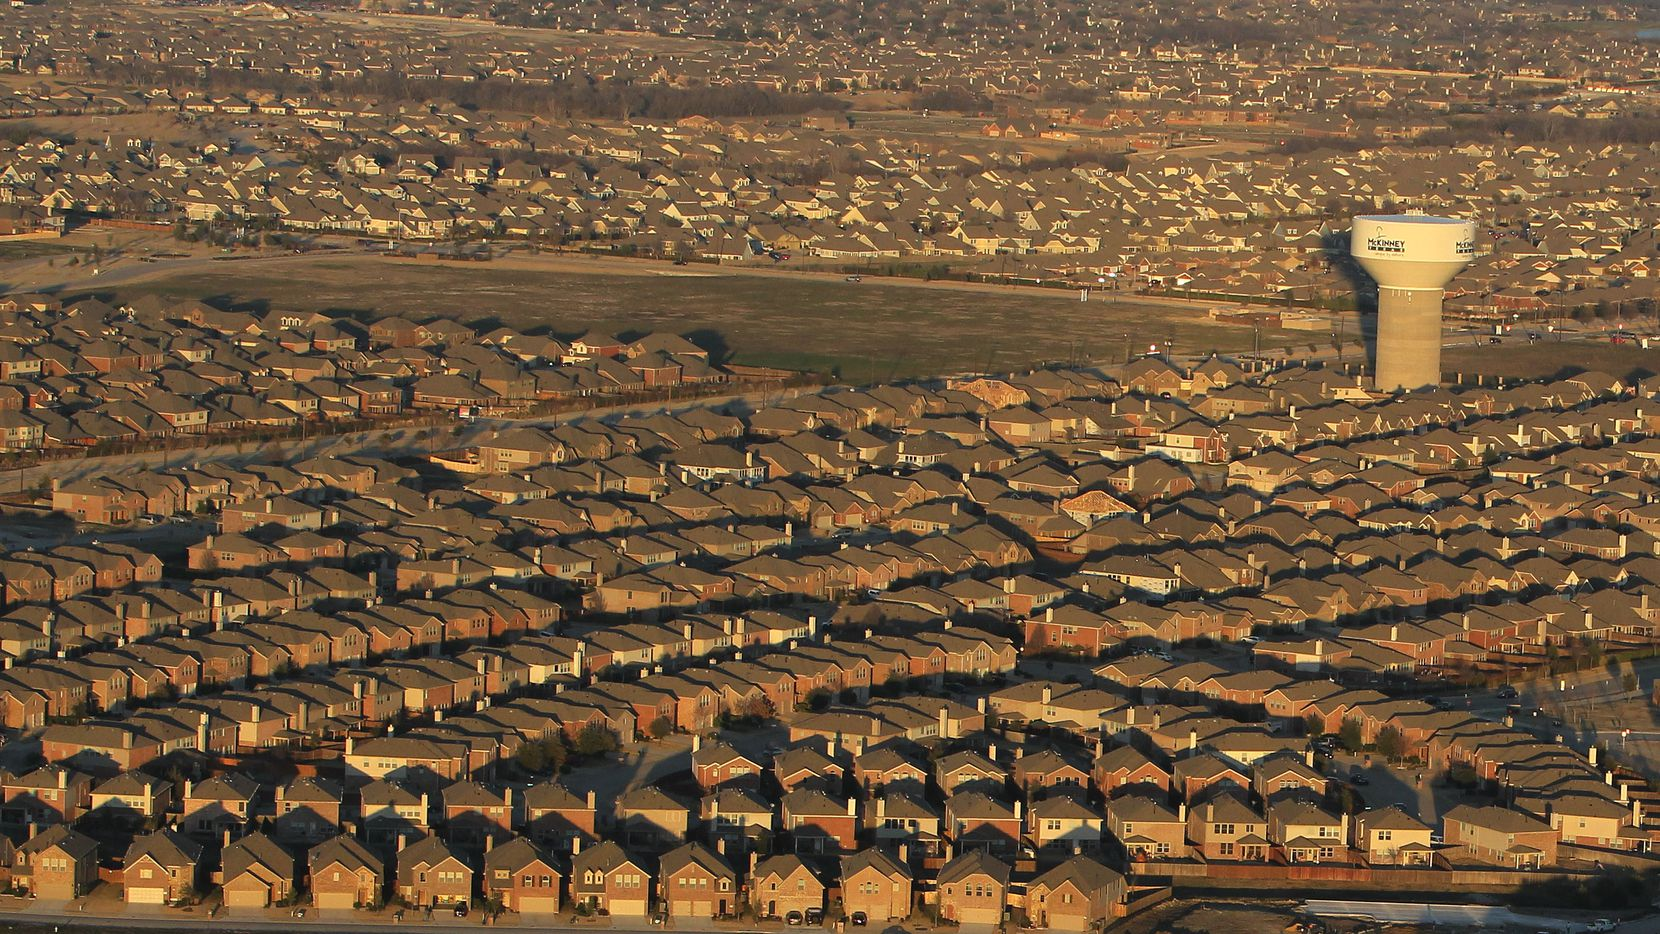 The planned McKinney residential community will have room for thousands of new homes.